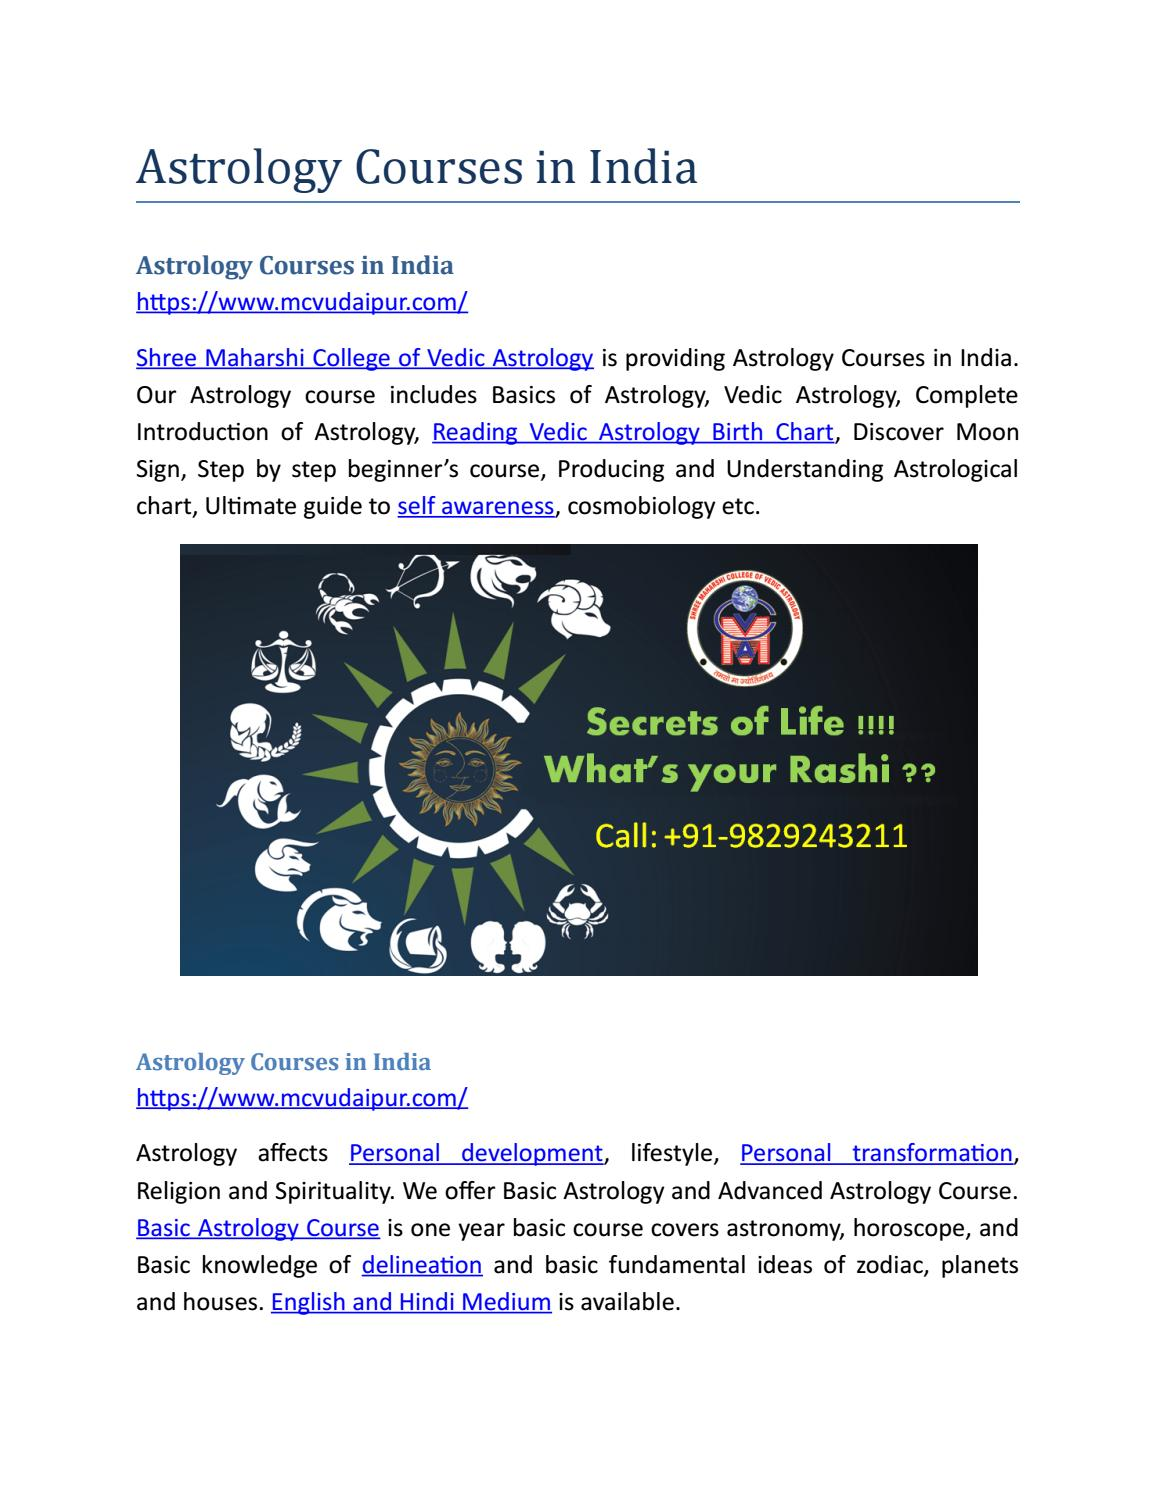 Astrology Courses in India by Shree Maharshi - issuu